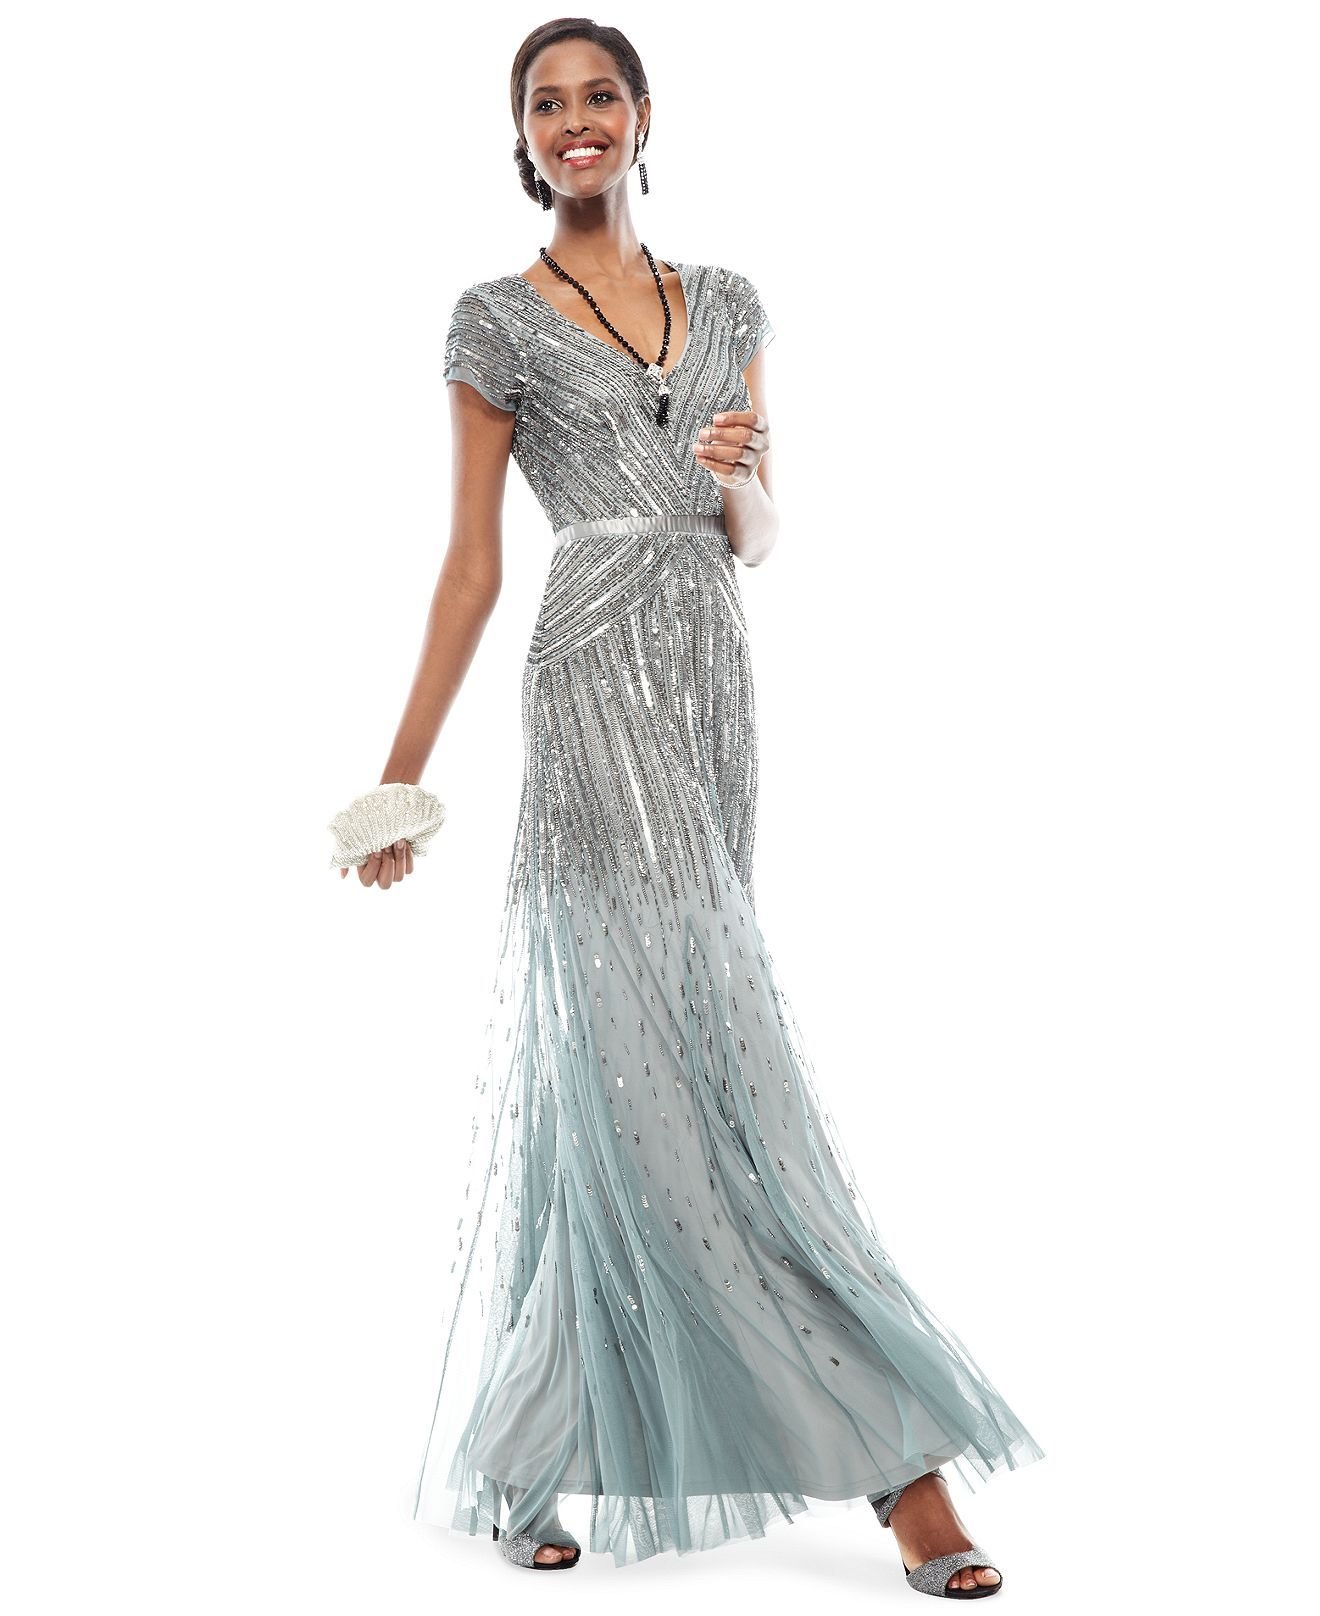 cfbbd5475eb The Dress Diaries Cap-Sleeve Beaded Formal Dress Look - Formal Dress -  Women - Macys